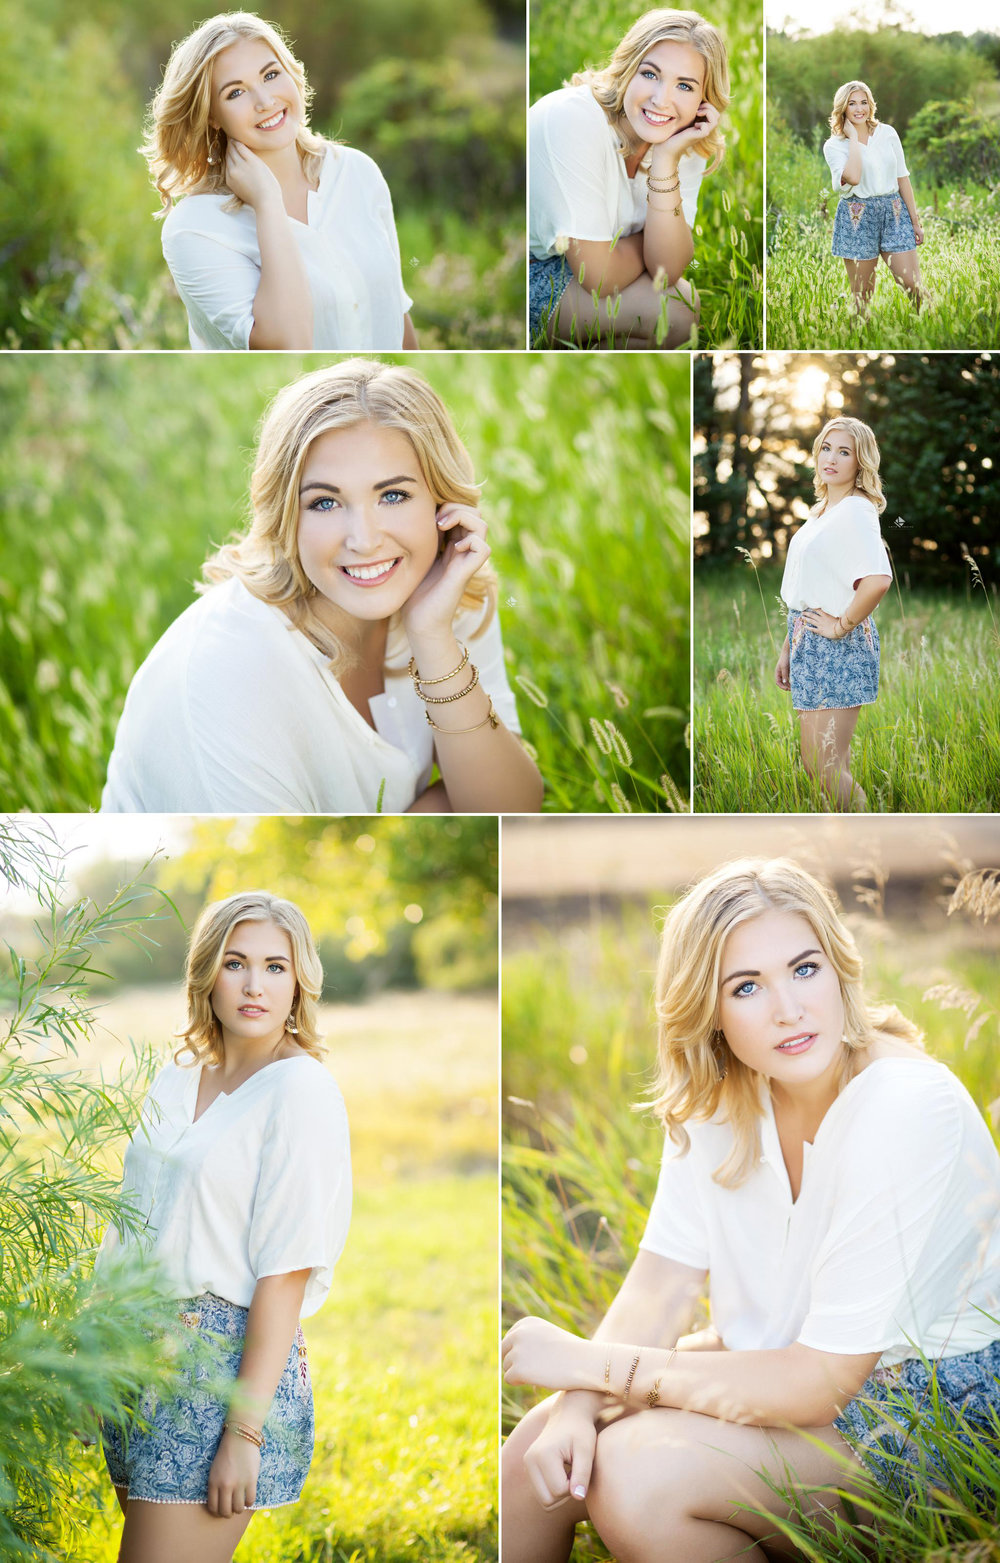 Country Senior by Katie Swatek Photography | Pretty Prep Senior by Katie Swatek Photography | Patterned Shorts Senior by Katie Swatek Photography